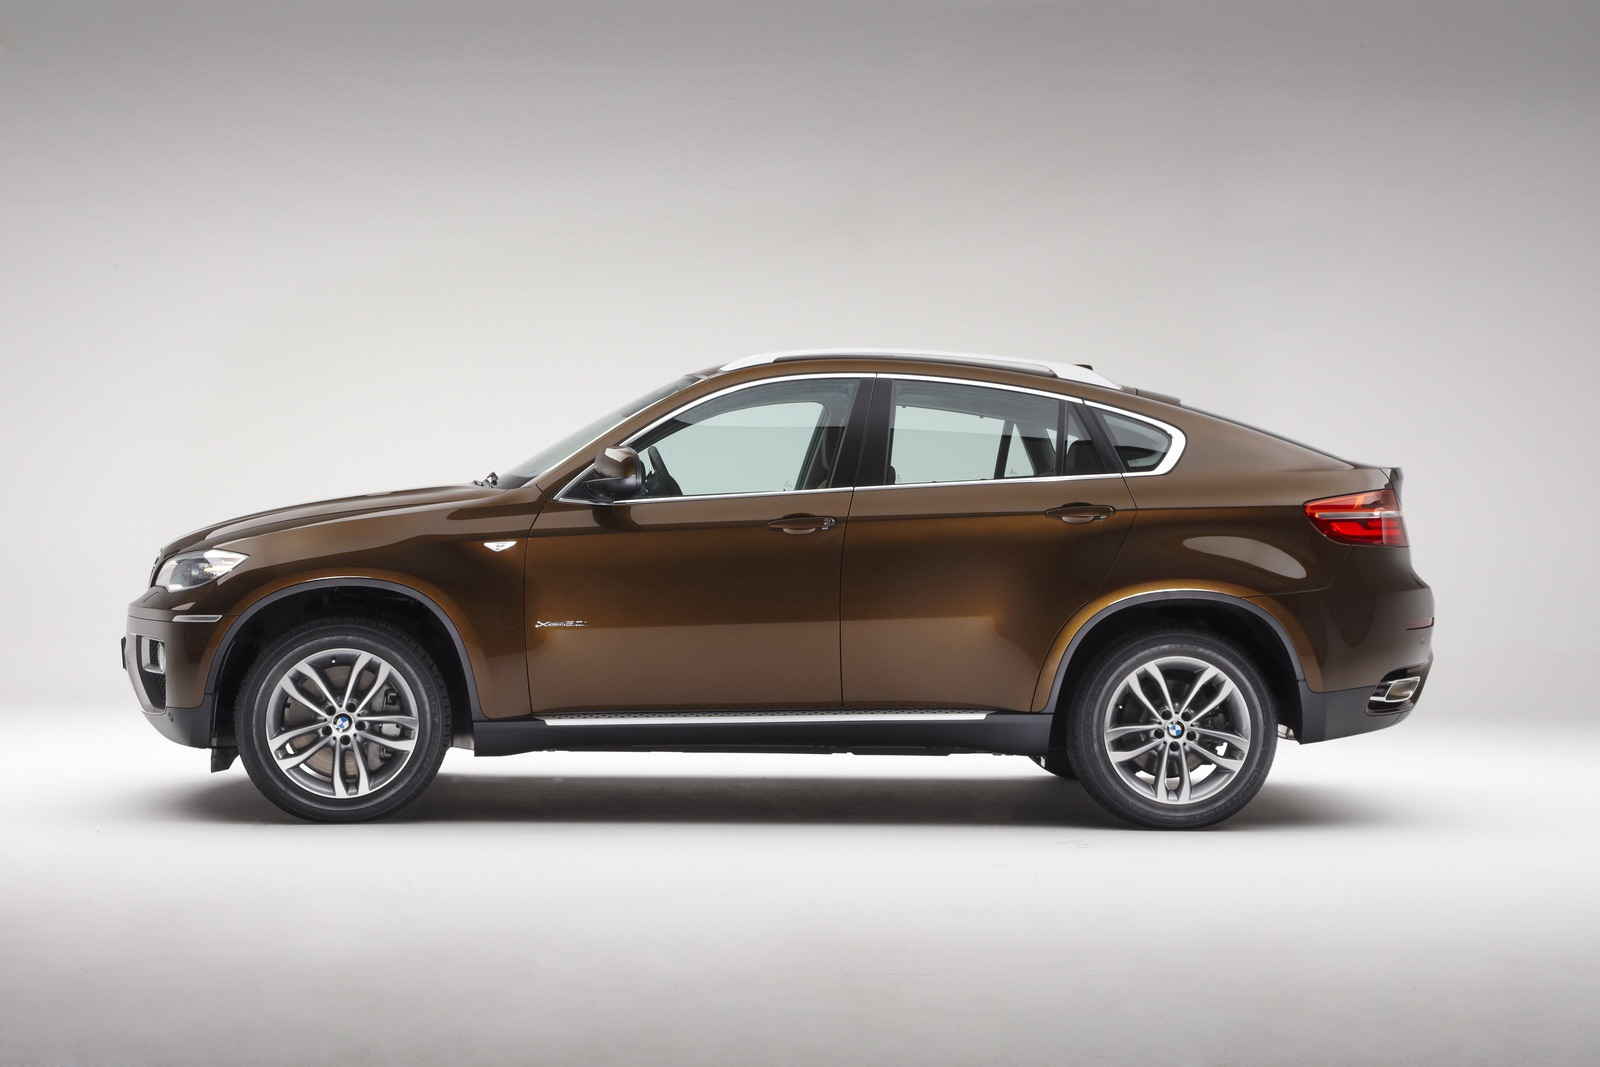 2013 Bmw X6 Facelift Unveiled Autoevolution